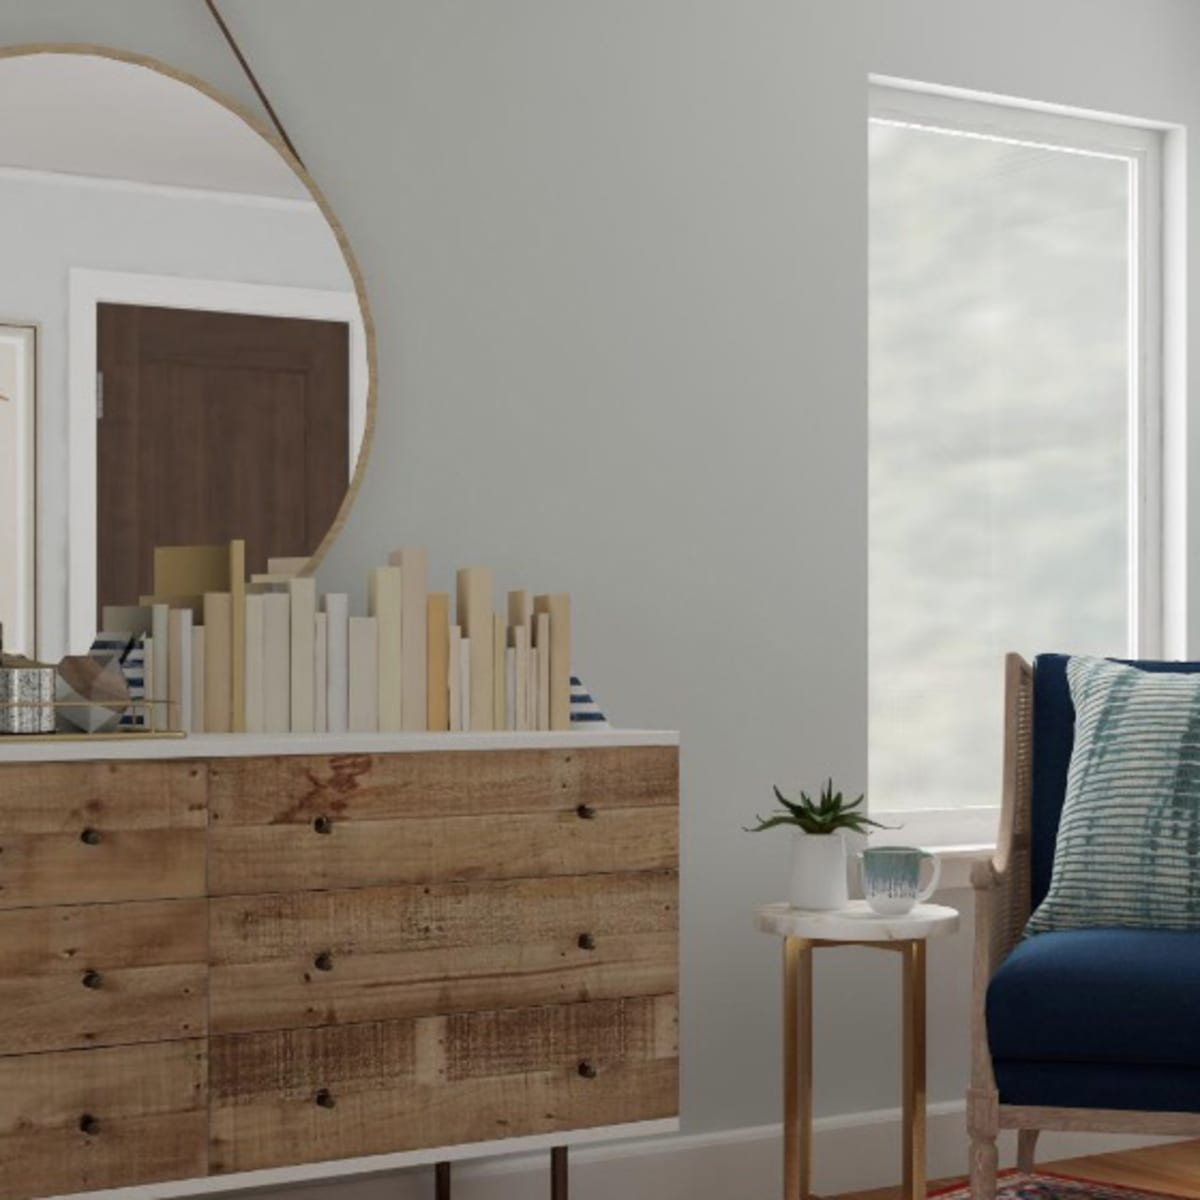 This online service will redesign any room in your home